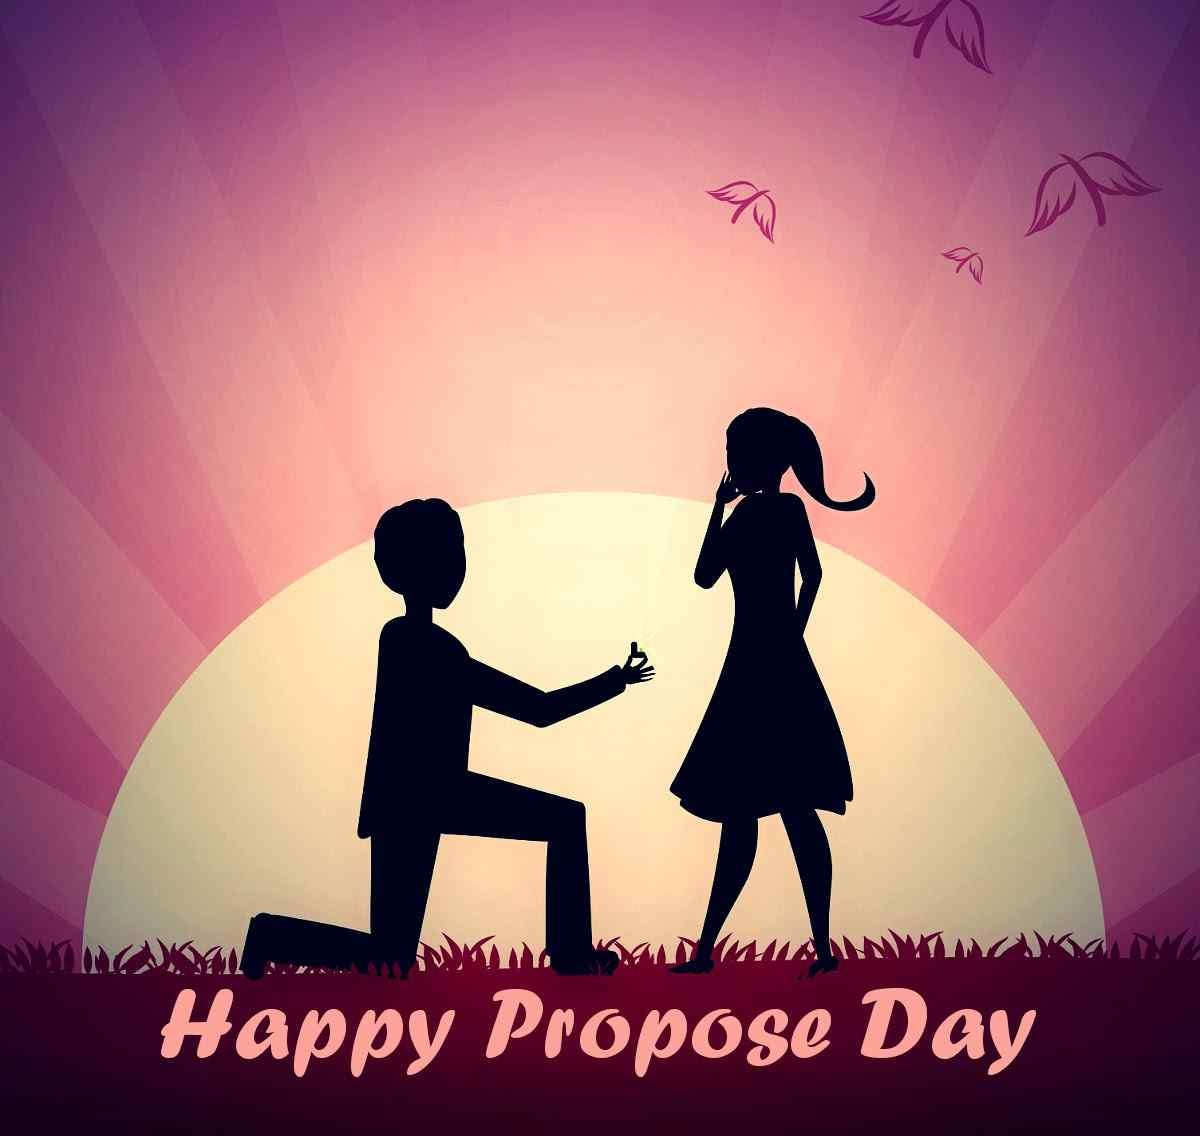 Happy Propose Day Shayari in Hindi for Girlfriend Boyfriend GF BF Wife Husband 2018